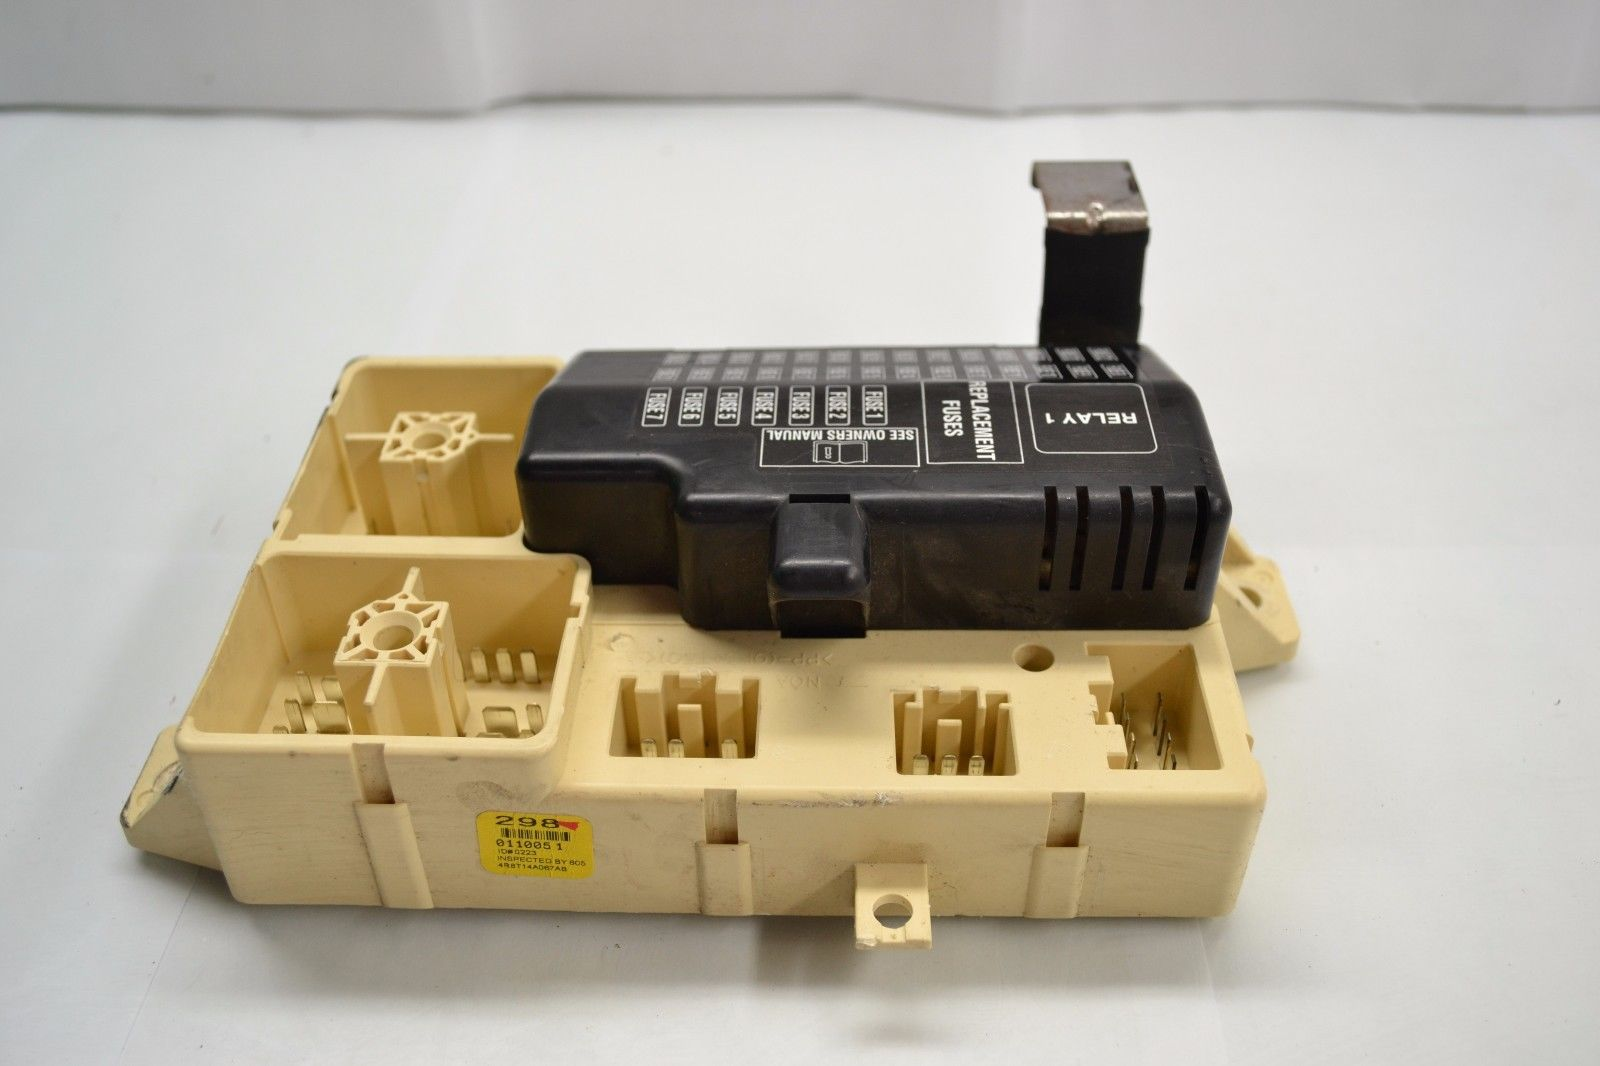 2003-2008 JAGUAR S-TYPE FRONT INTERIOR MAIN FUSE BOX ASSEMBLY 2R8T14A067 OEM 2R8T14A067